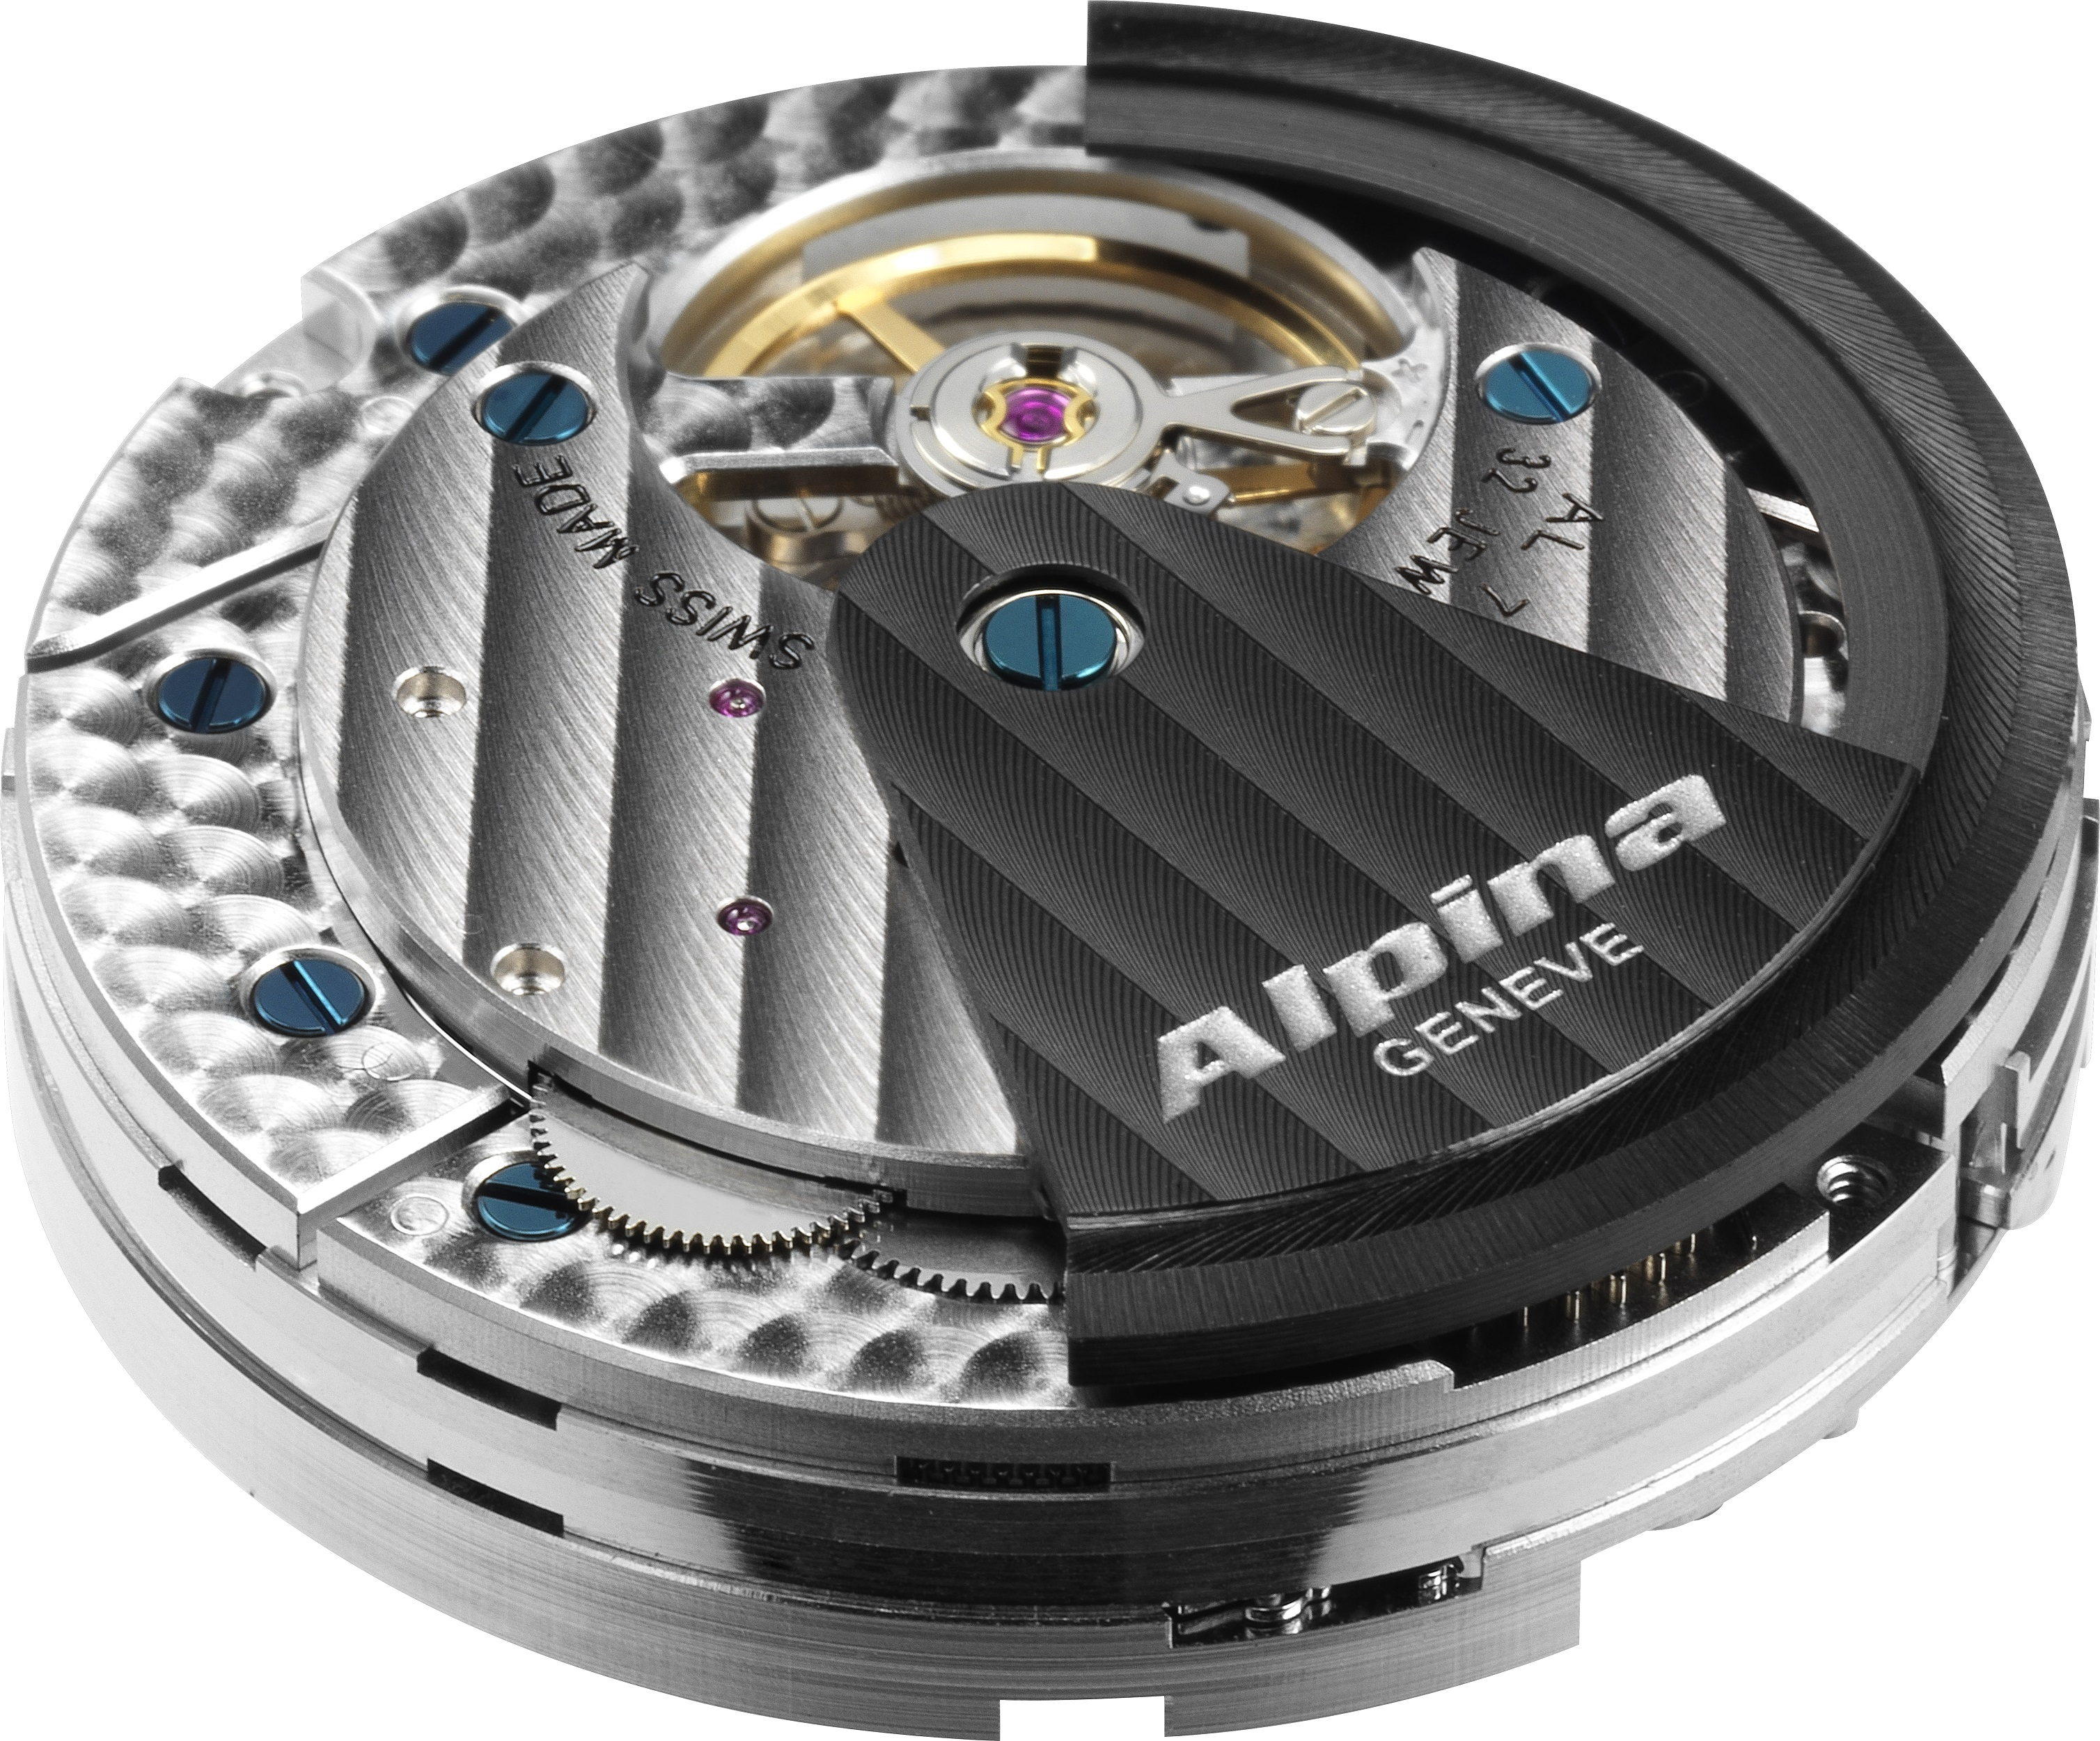 ​Alpiner 4 Chronographe Manufacture Flyback : premier mouvement chronographe manufacture dans l'histoire d'Alpina